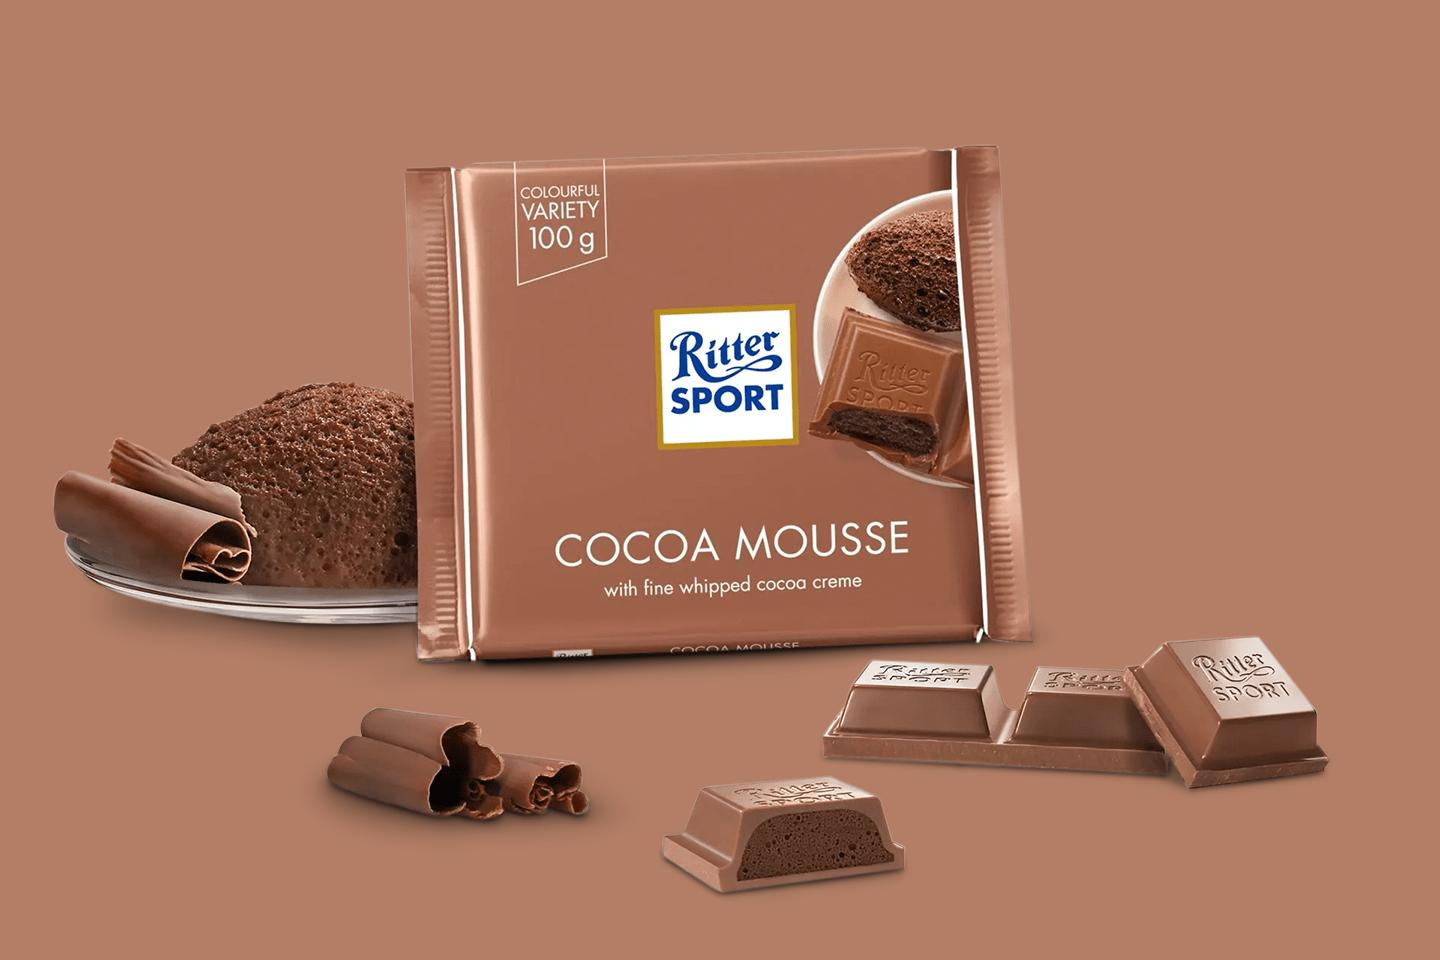 Cocoa Mousse 100g Ritter Sport